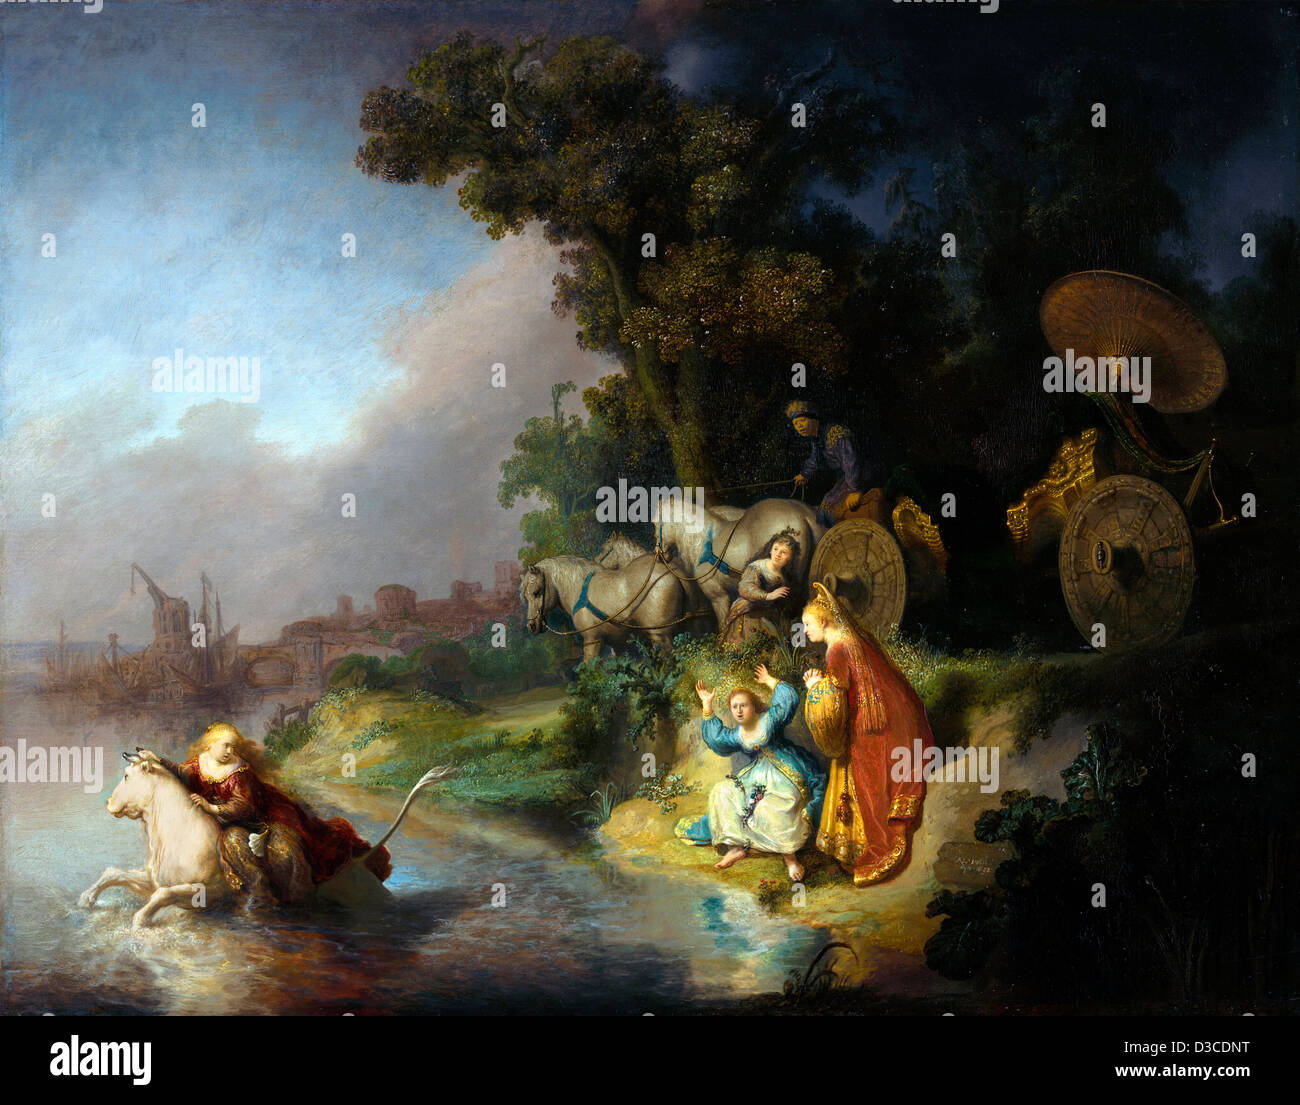 Rembrandt van Rijn, The abduction of Europa. 1632 Oil on panel. Baroque. The J. Paul Getty Museum. - Stock Image